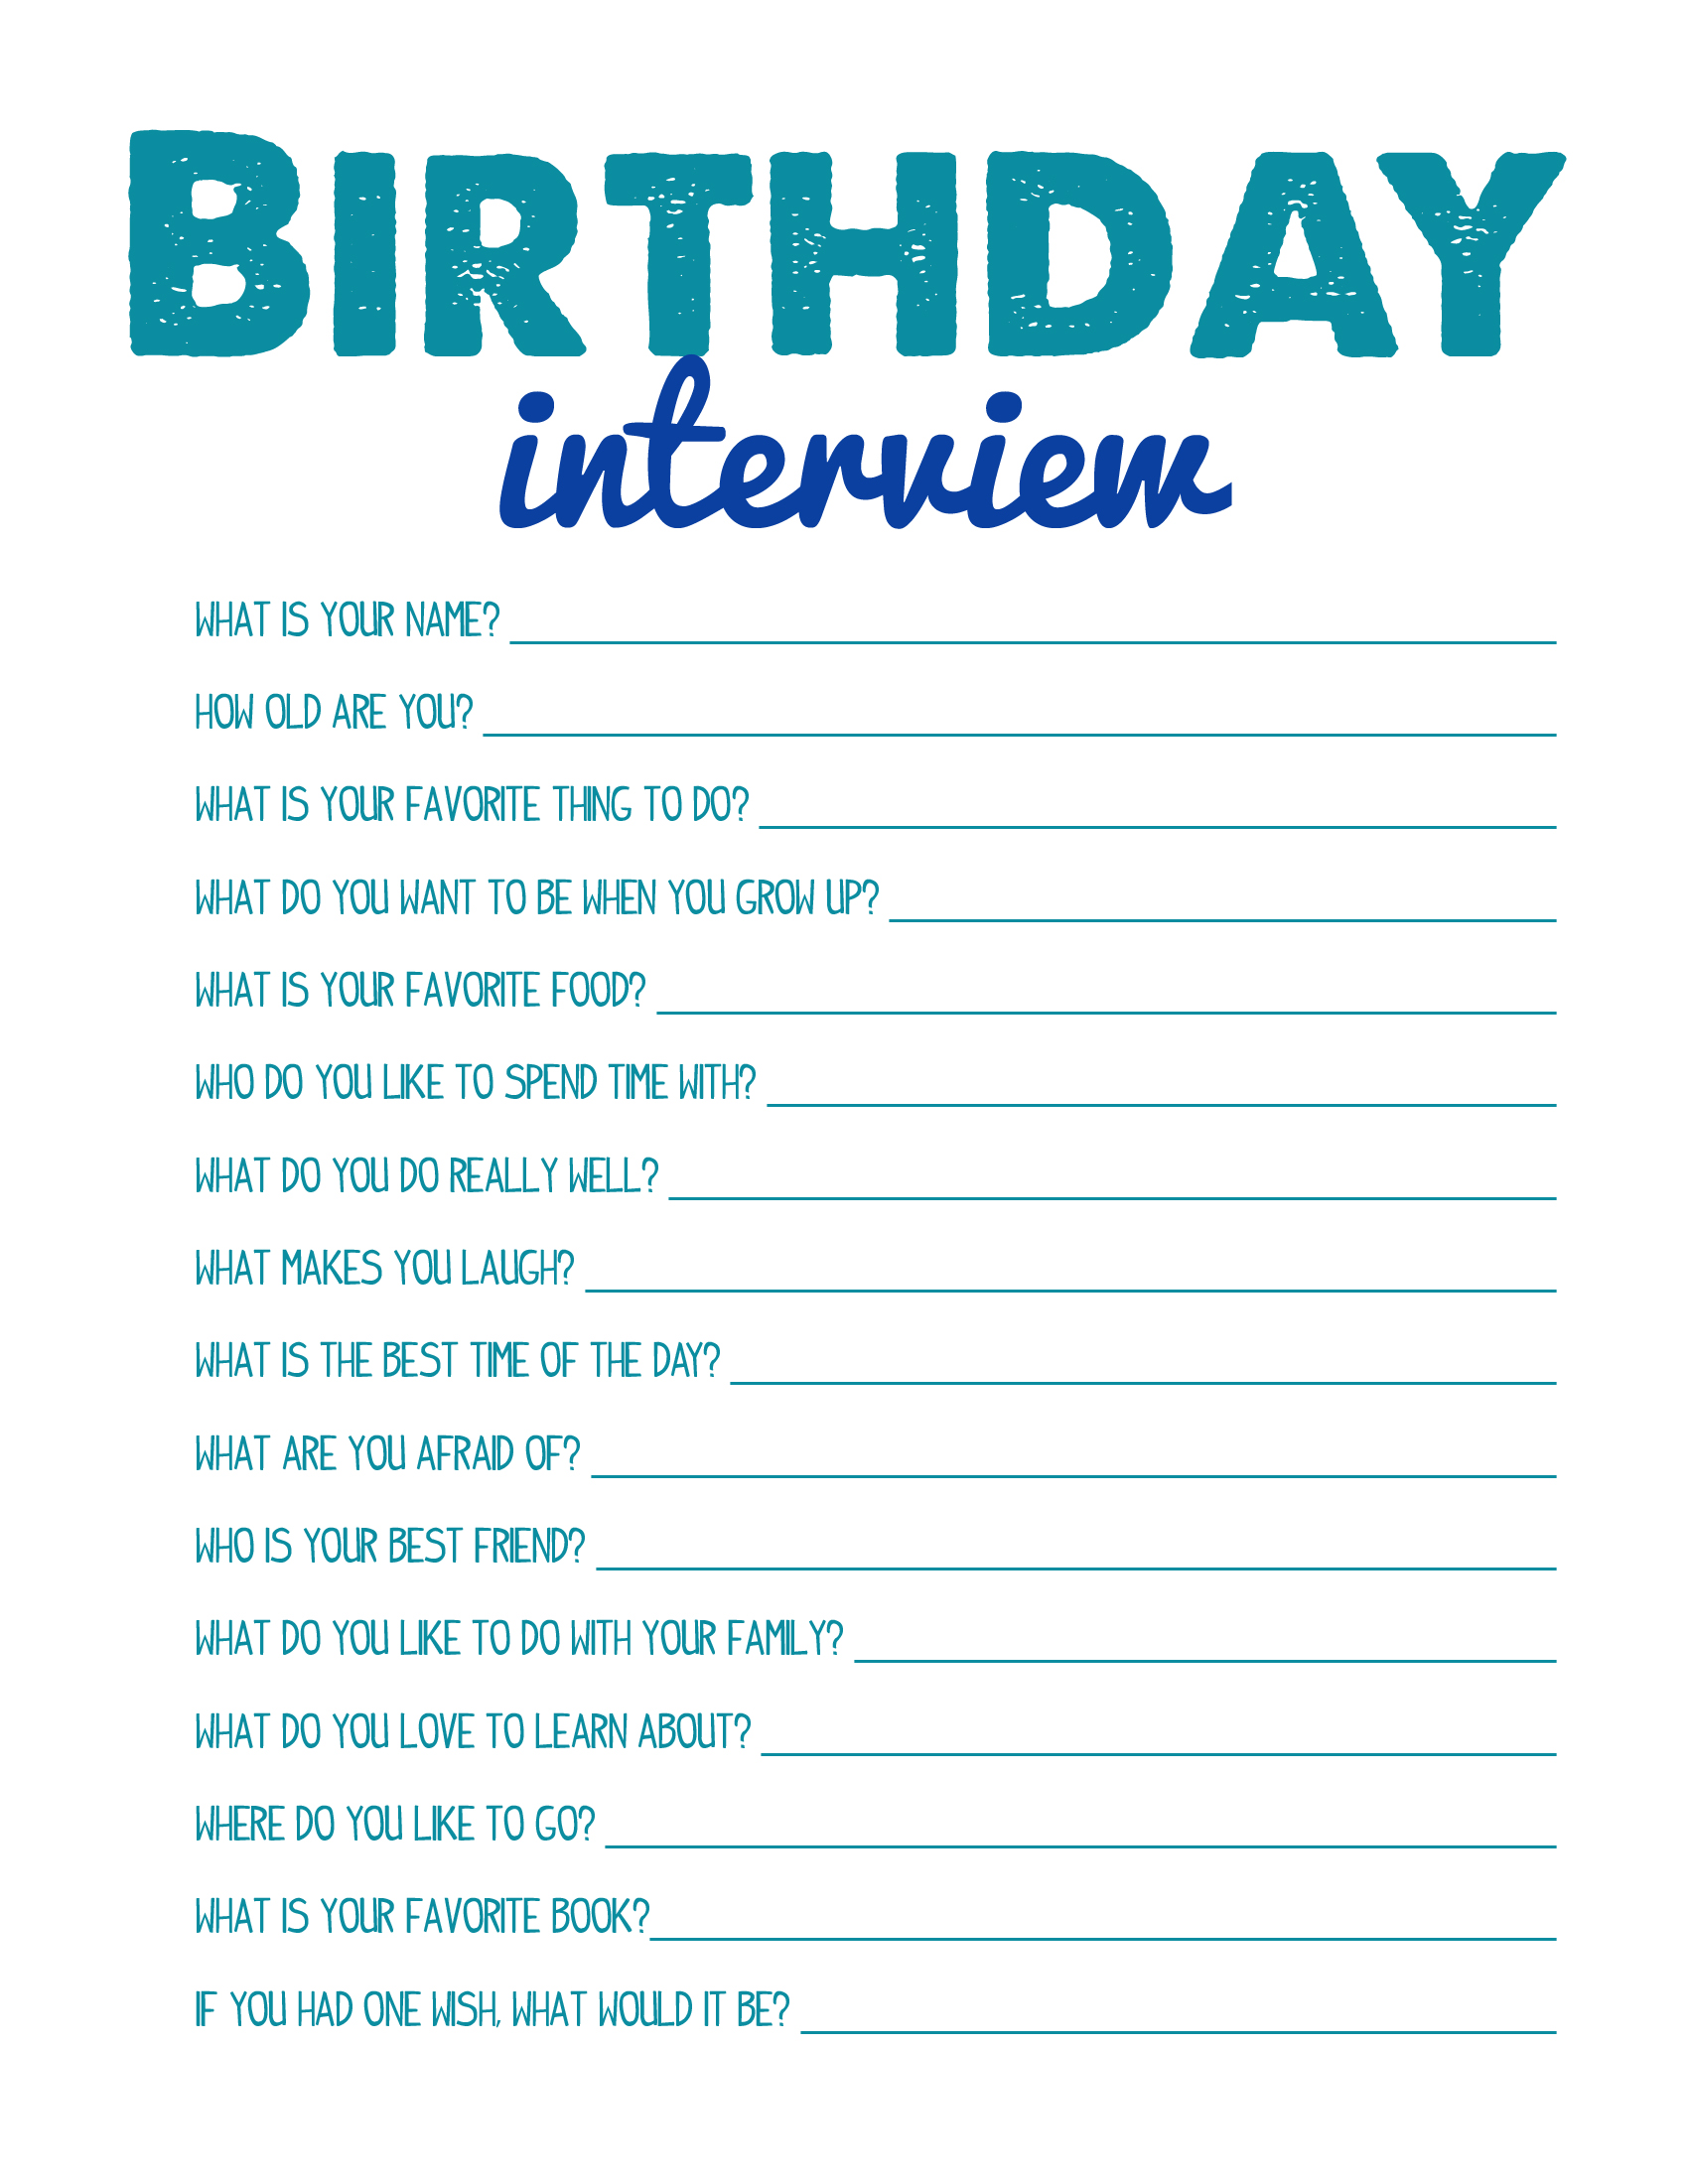 4 Images of Free Printable Birthday Interview